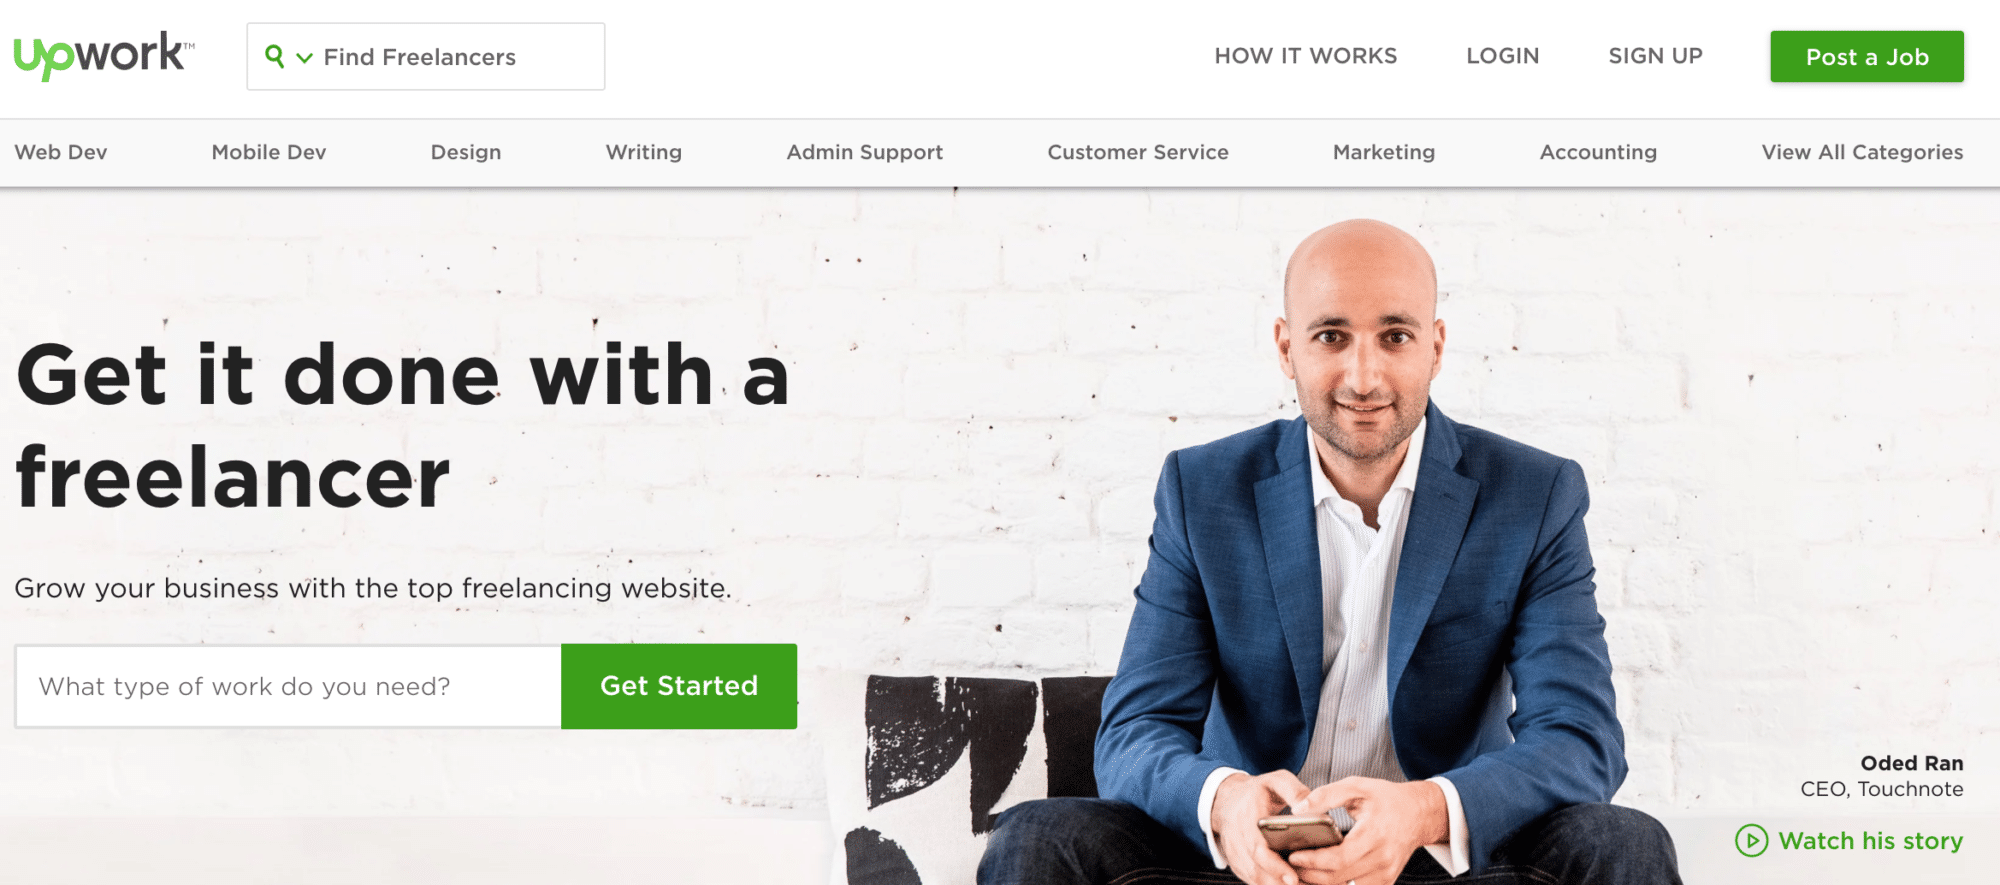 Upwork home page